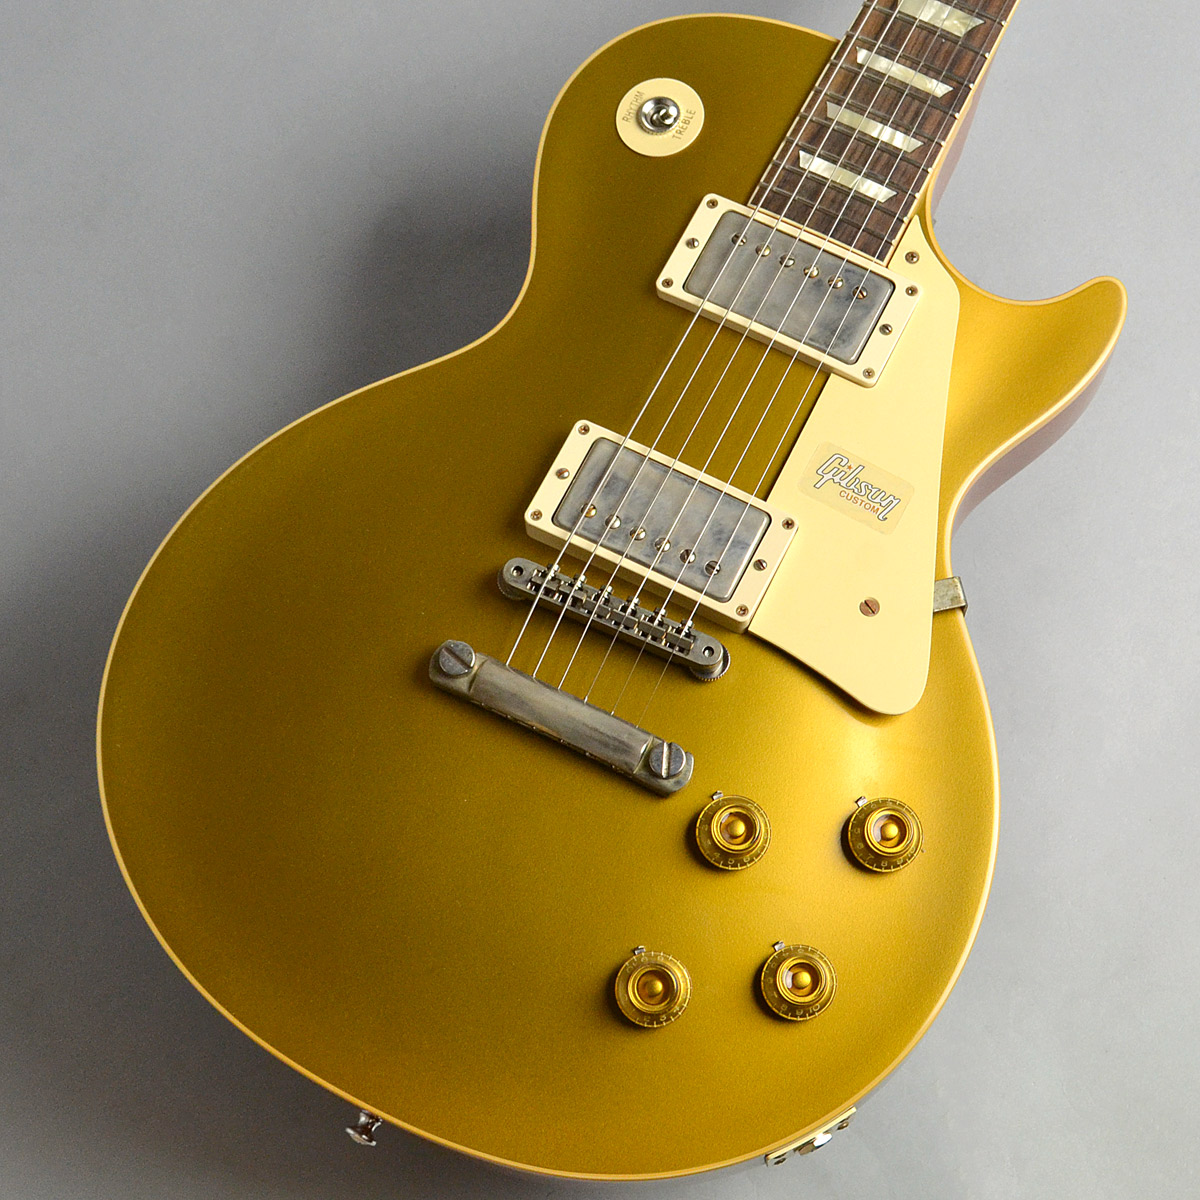 1957 Les Paul Gold top VOSのボディトップ-アップ画像